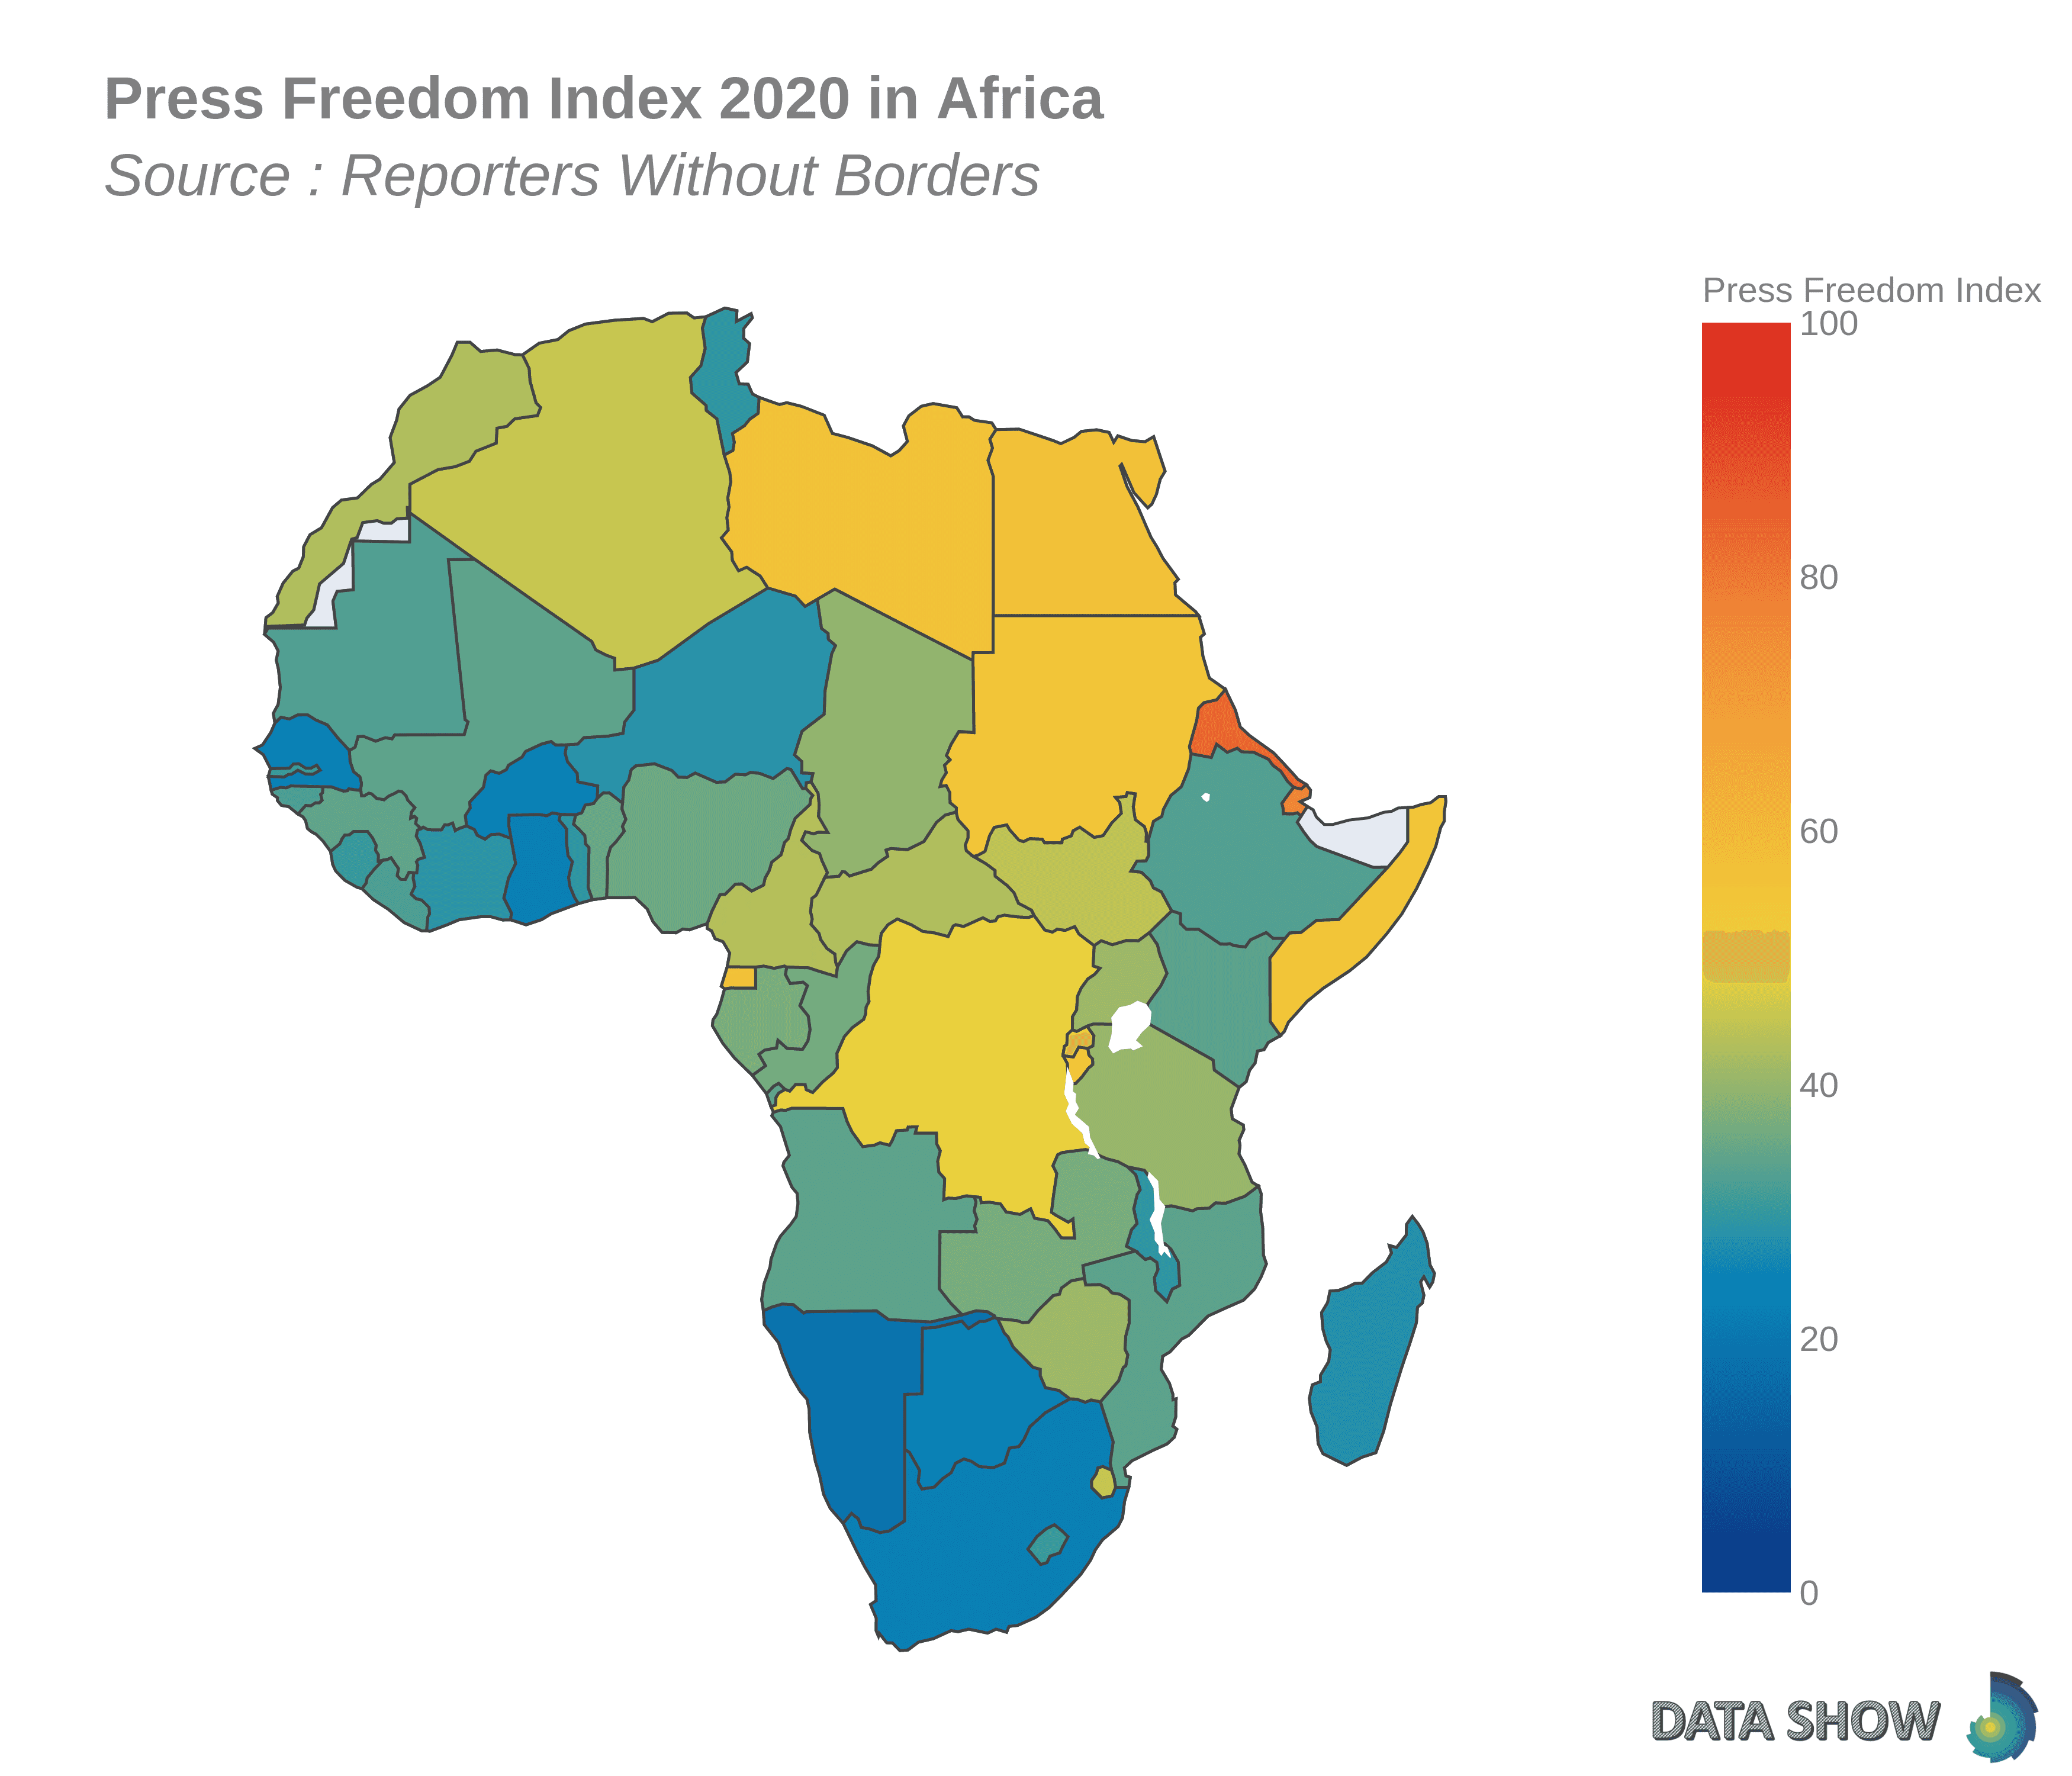 Press Freedom Index 2020 in Africa